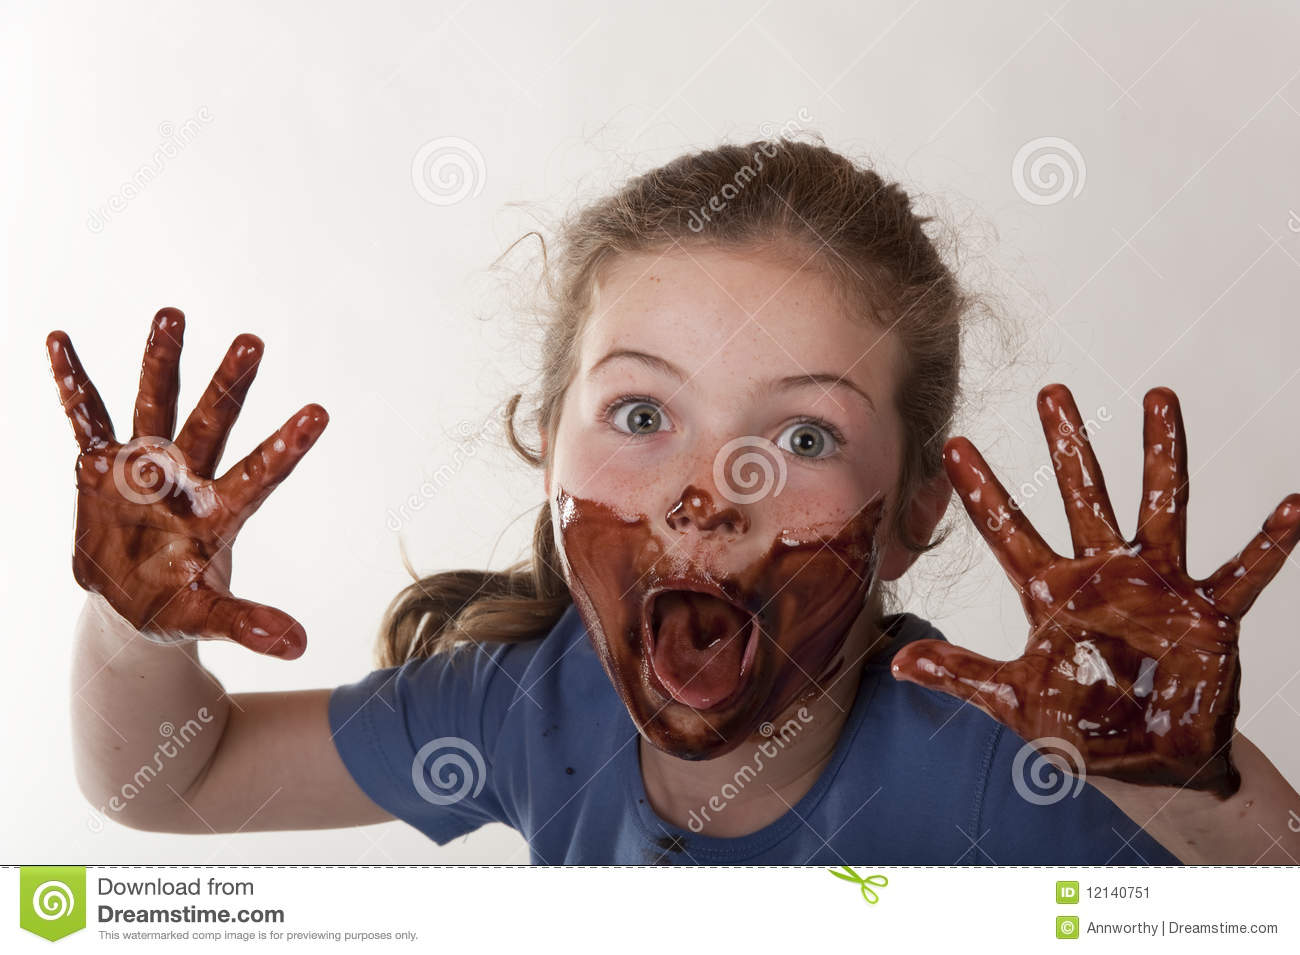 Child Chocolate Face Stock Photos, Images, & Pictures - 2,970 Images